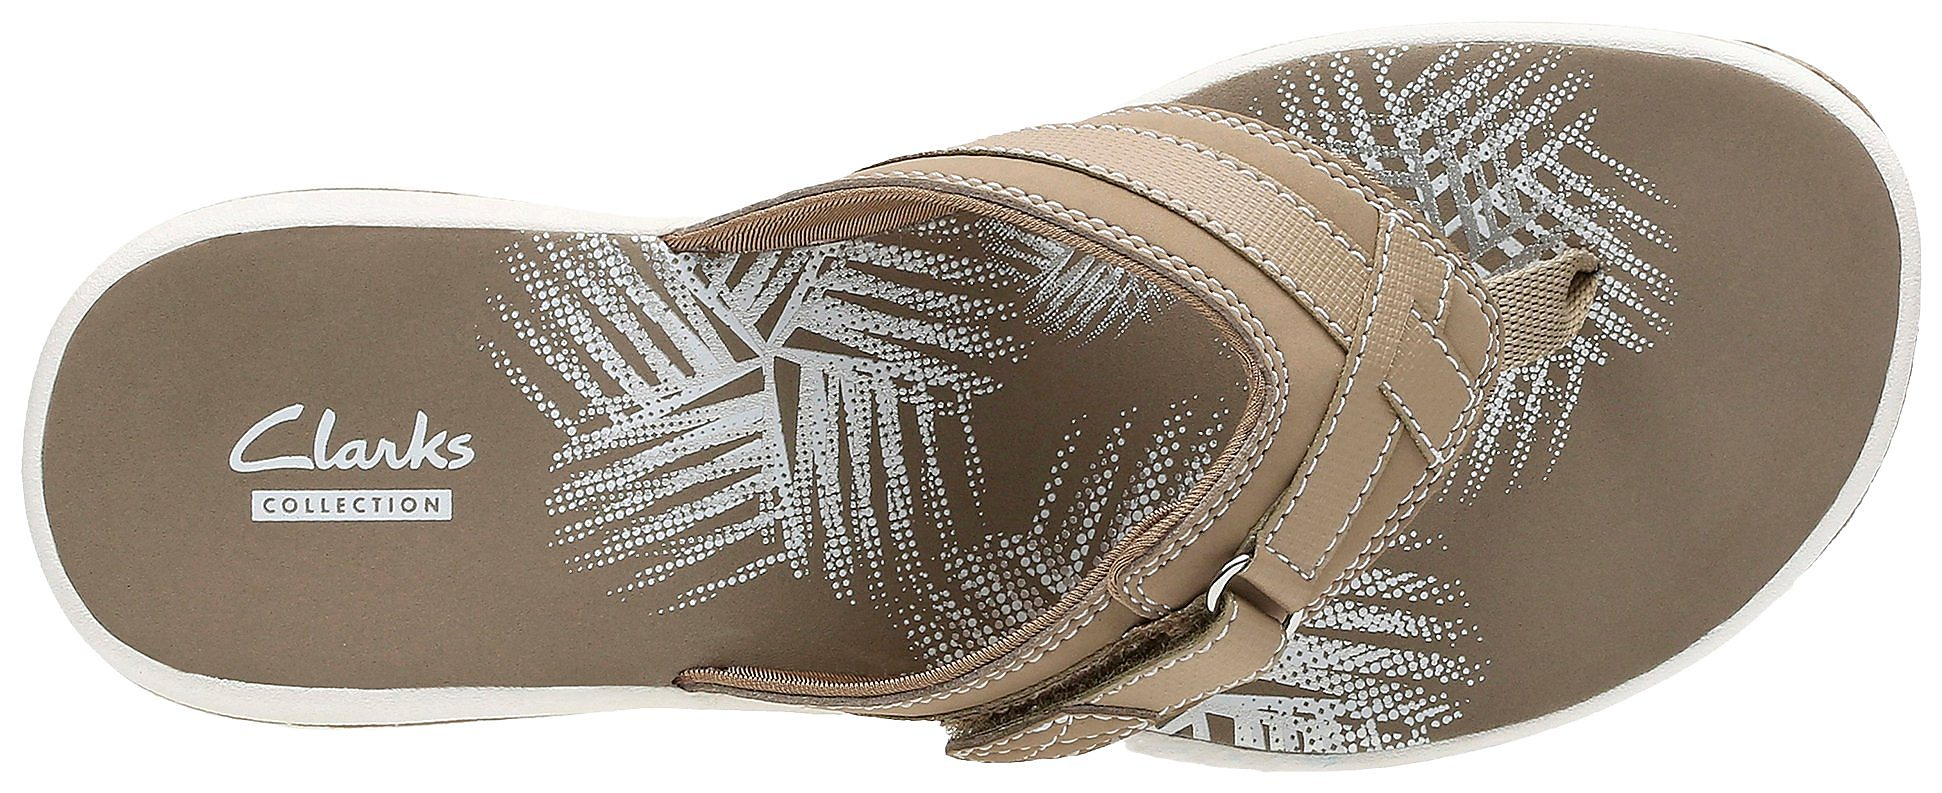 Clarks-Womens-Breeze-Sea-Flip-Flops-Comfort-Summer-Sandals thumbnail 33